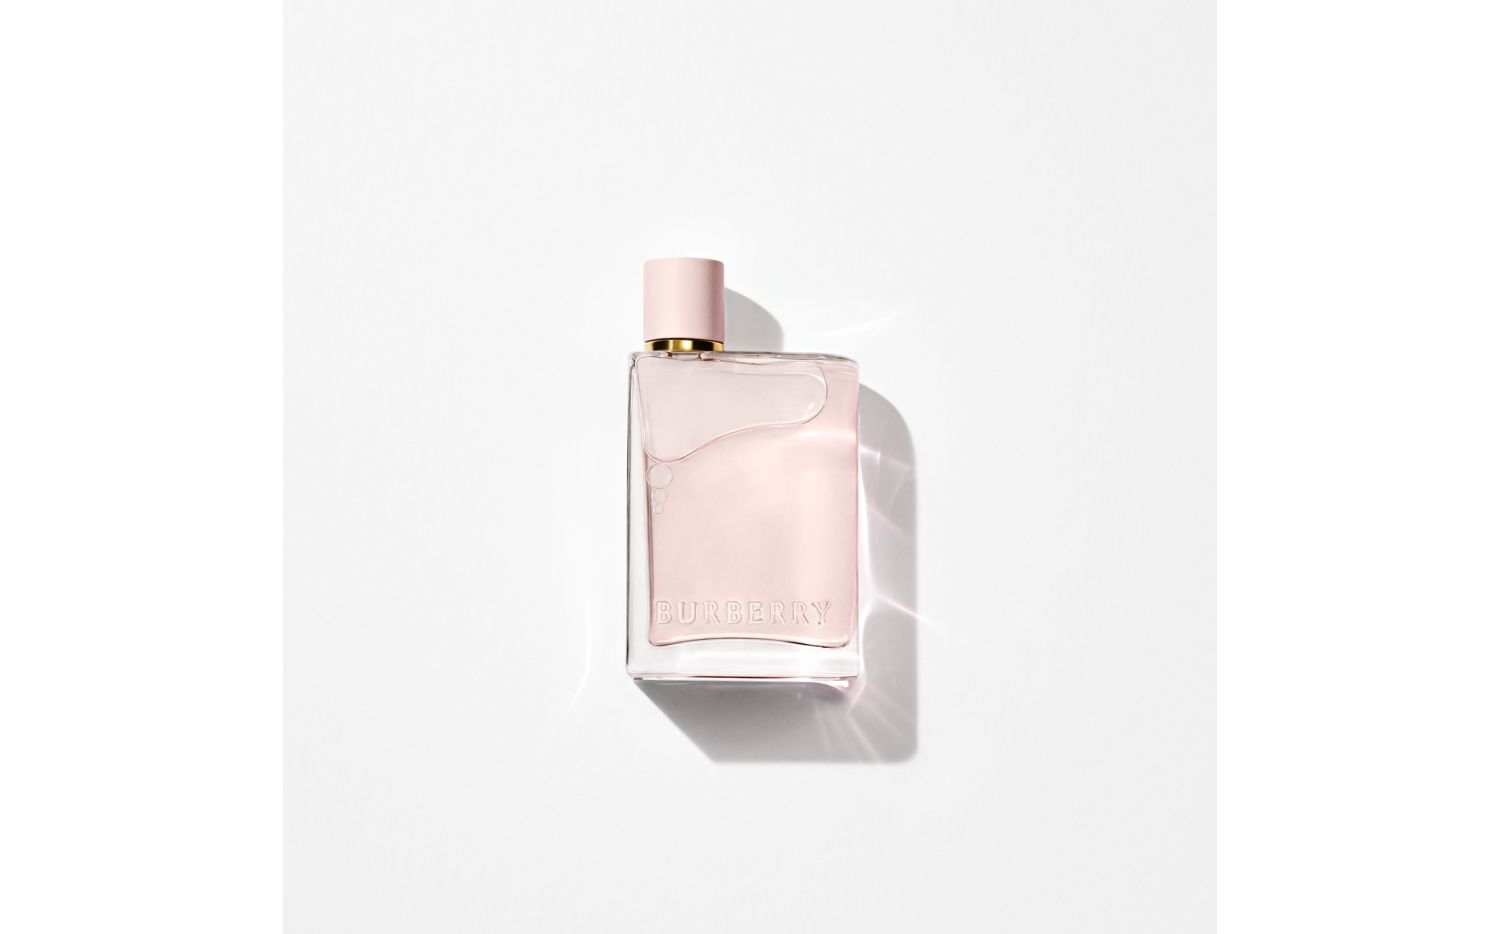 Her – The New Fragrance